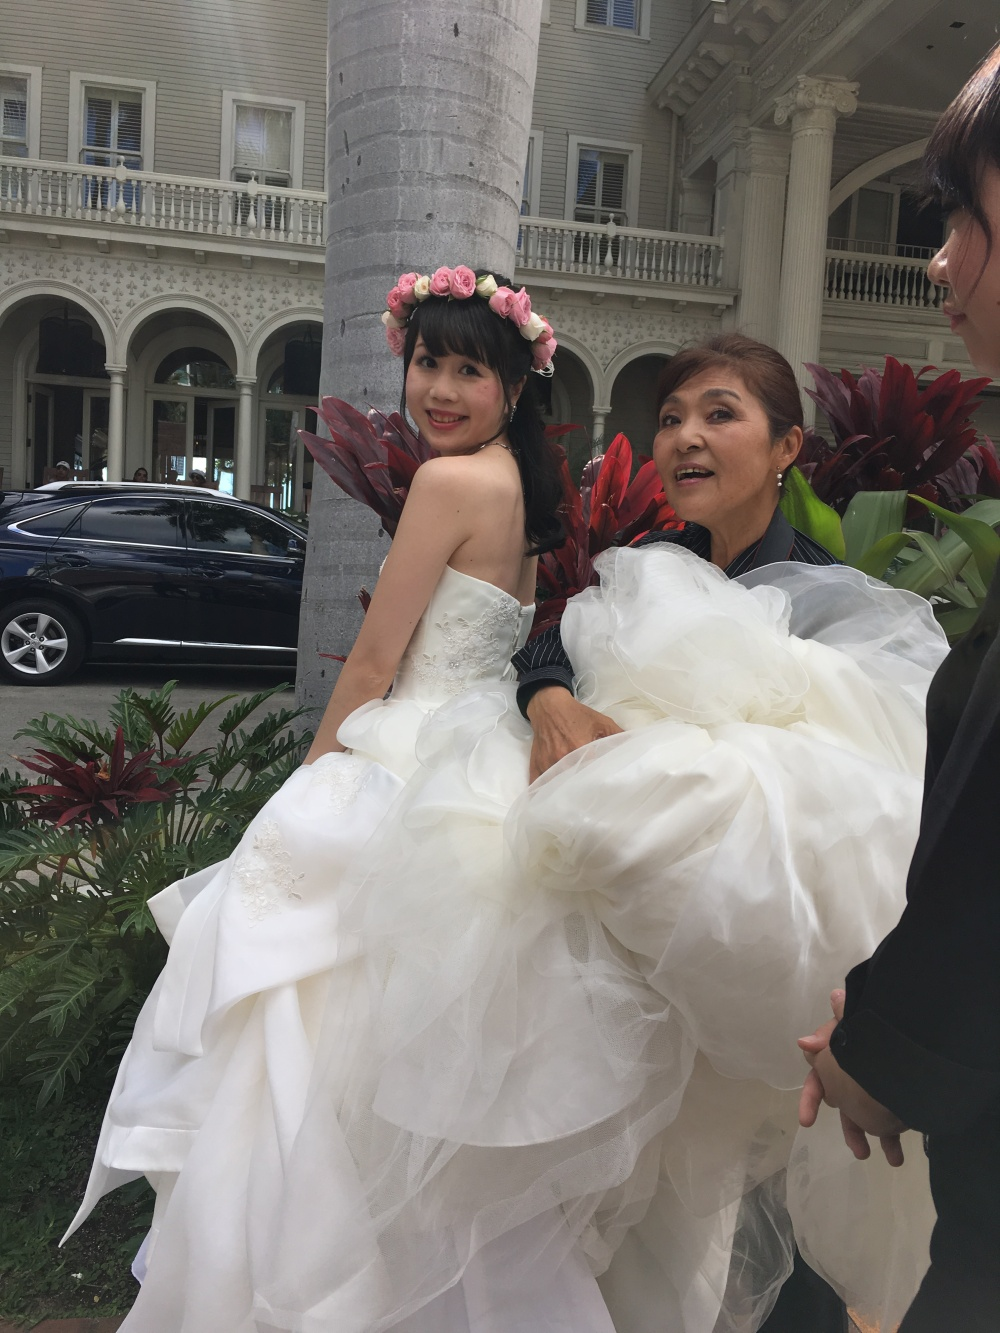 Bride and her stylist outside the Moana Hotel in Waikiki.